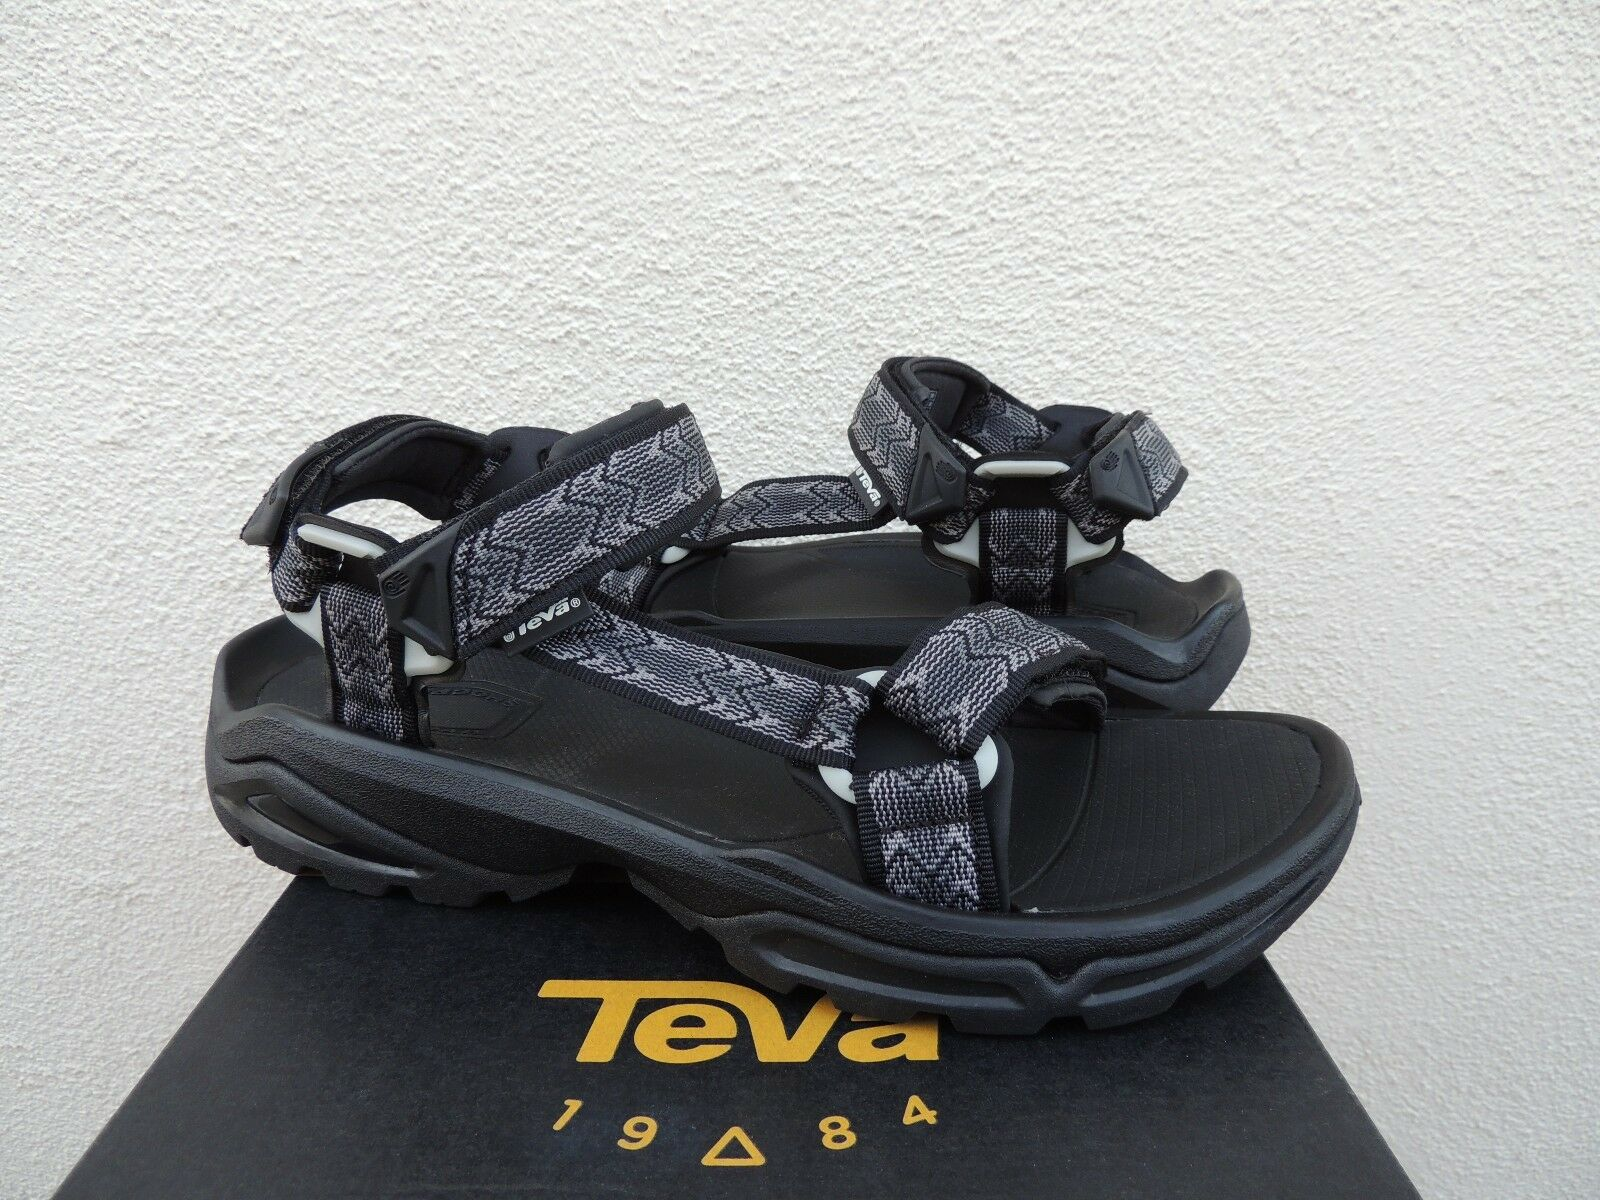 TEVA TERRA FI 4 CROSS BLACK STRAPPY SPORT  HIKING SANDALS, US 12  EUR 45.5 NEW